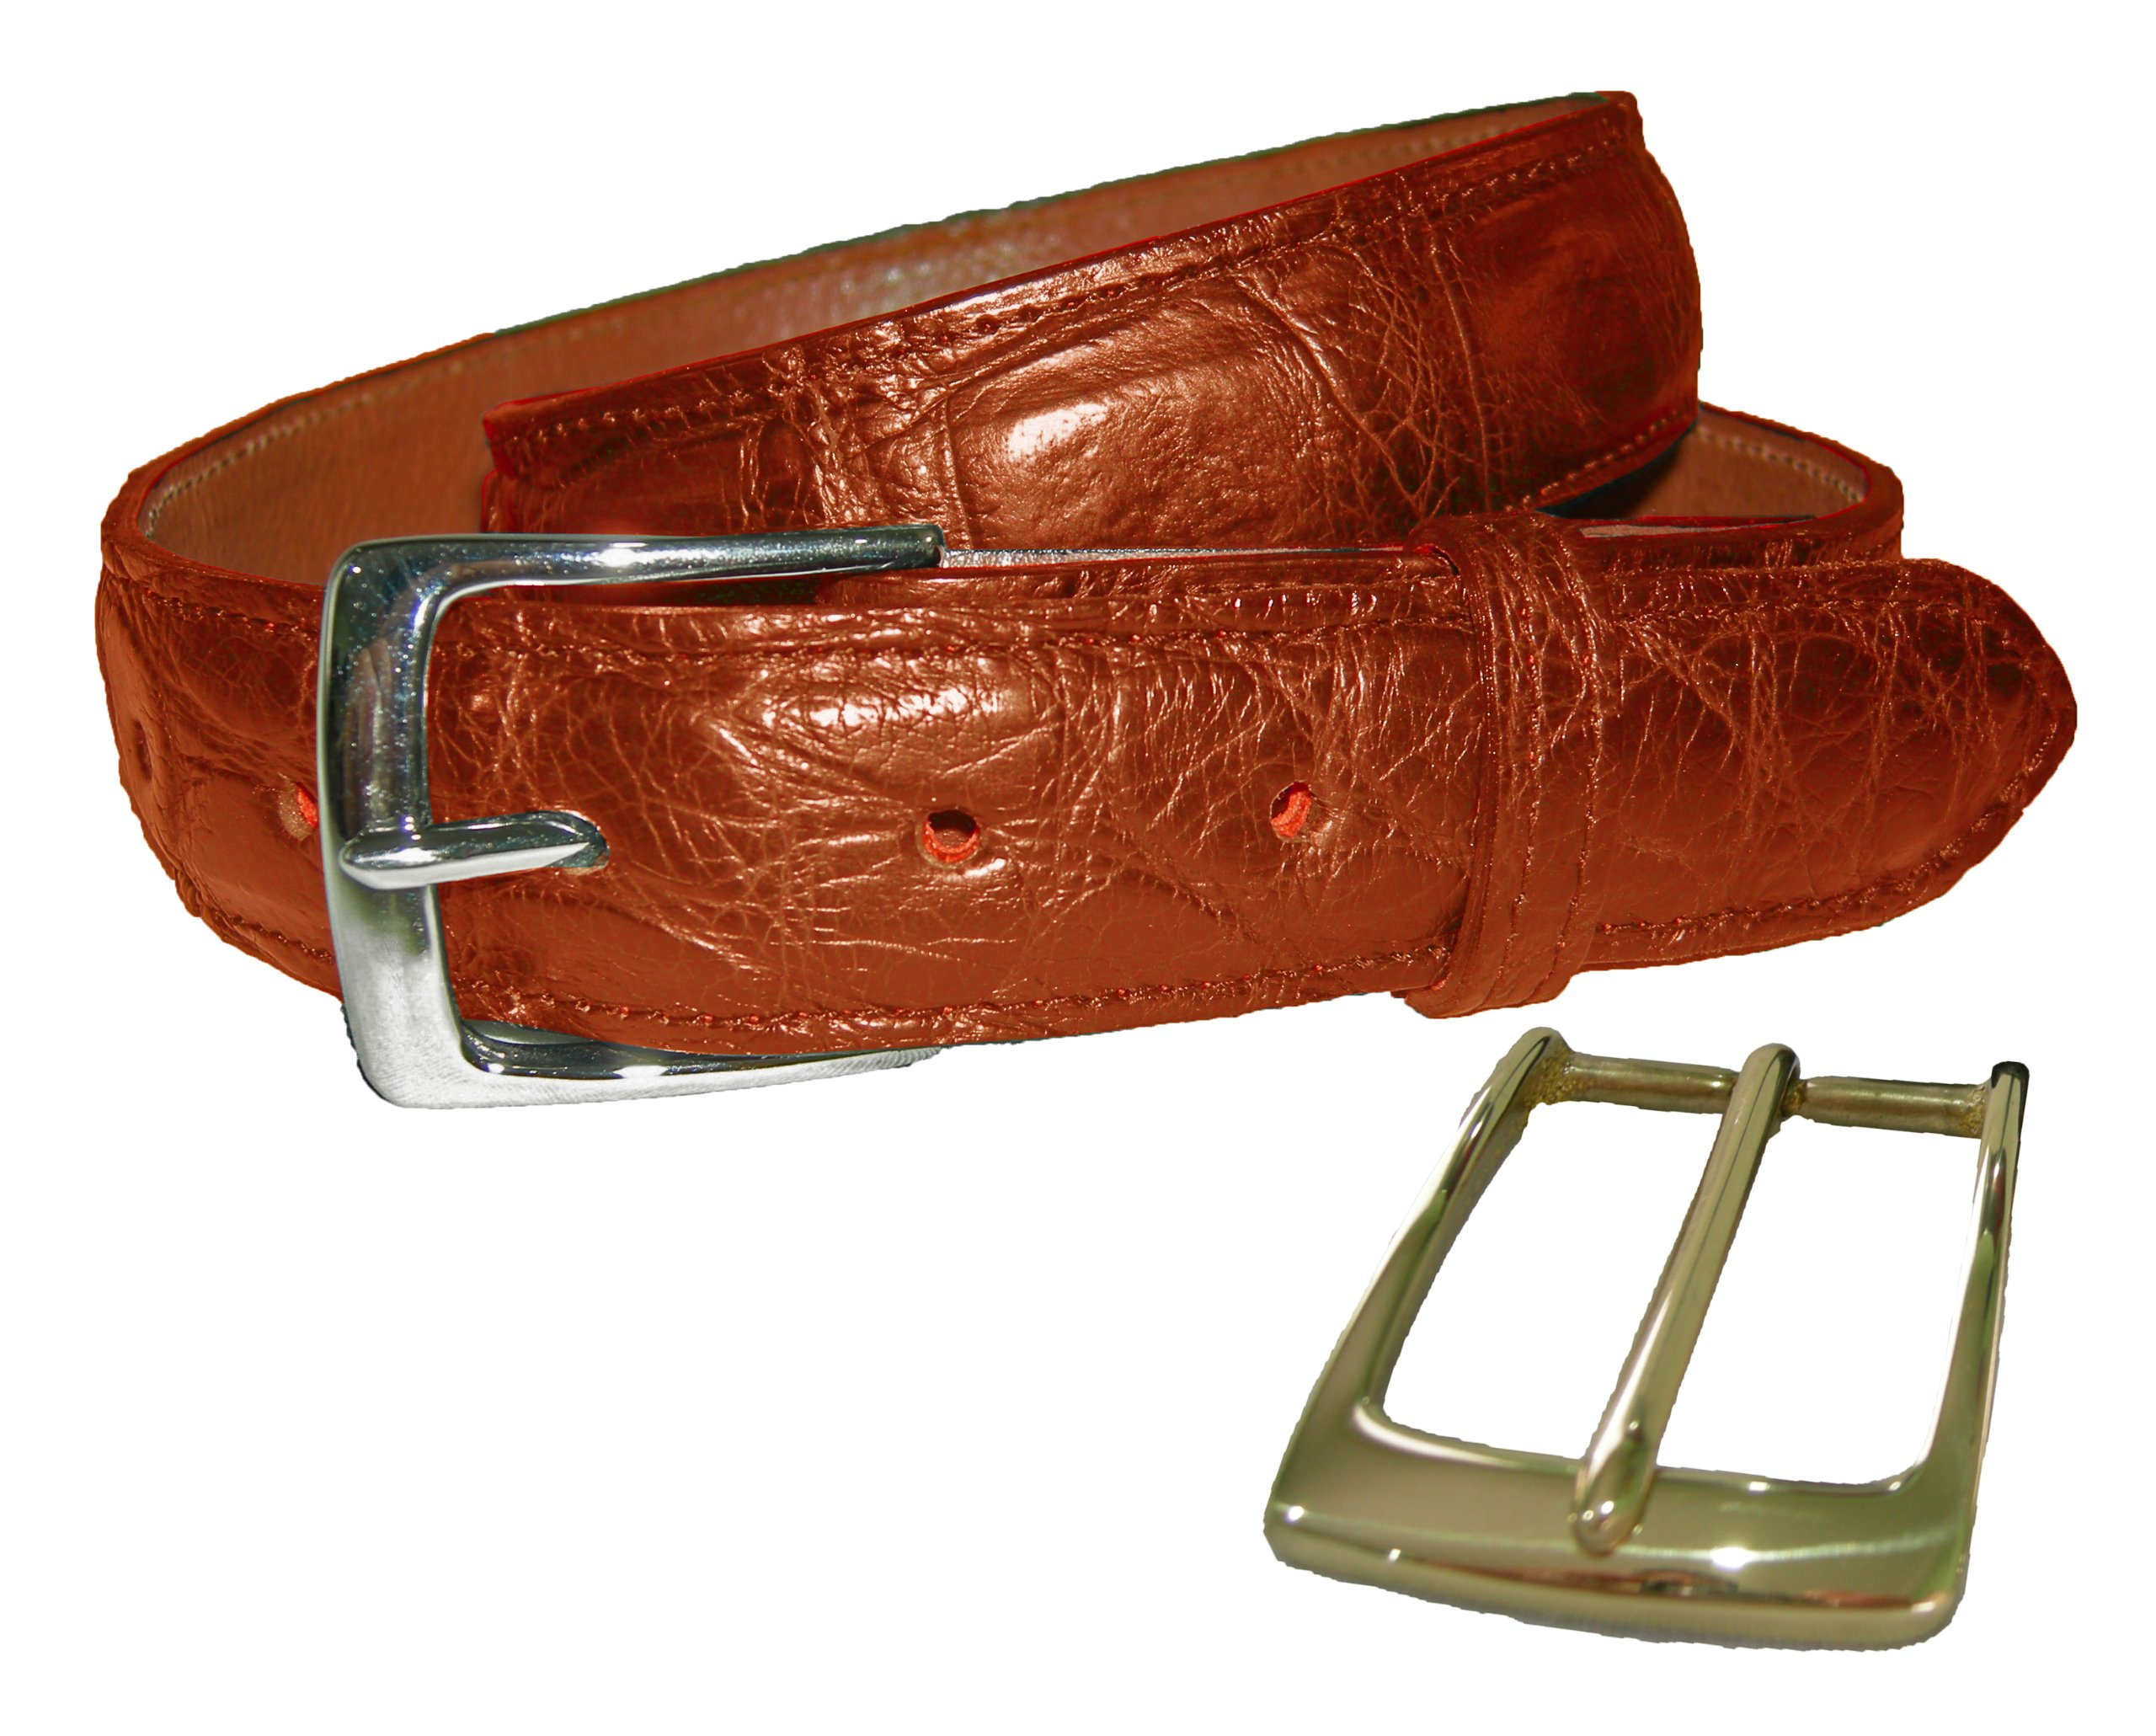 Sultan Genuine Alligator Men's 1-1/4'' Belt - Cognac Safari (Semi-Gloss) - 36